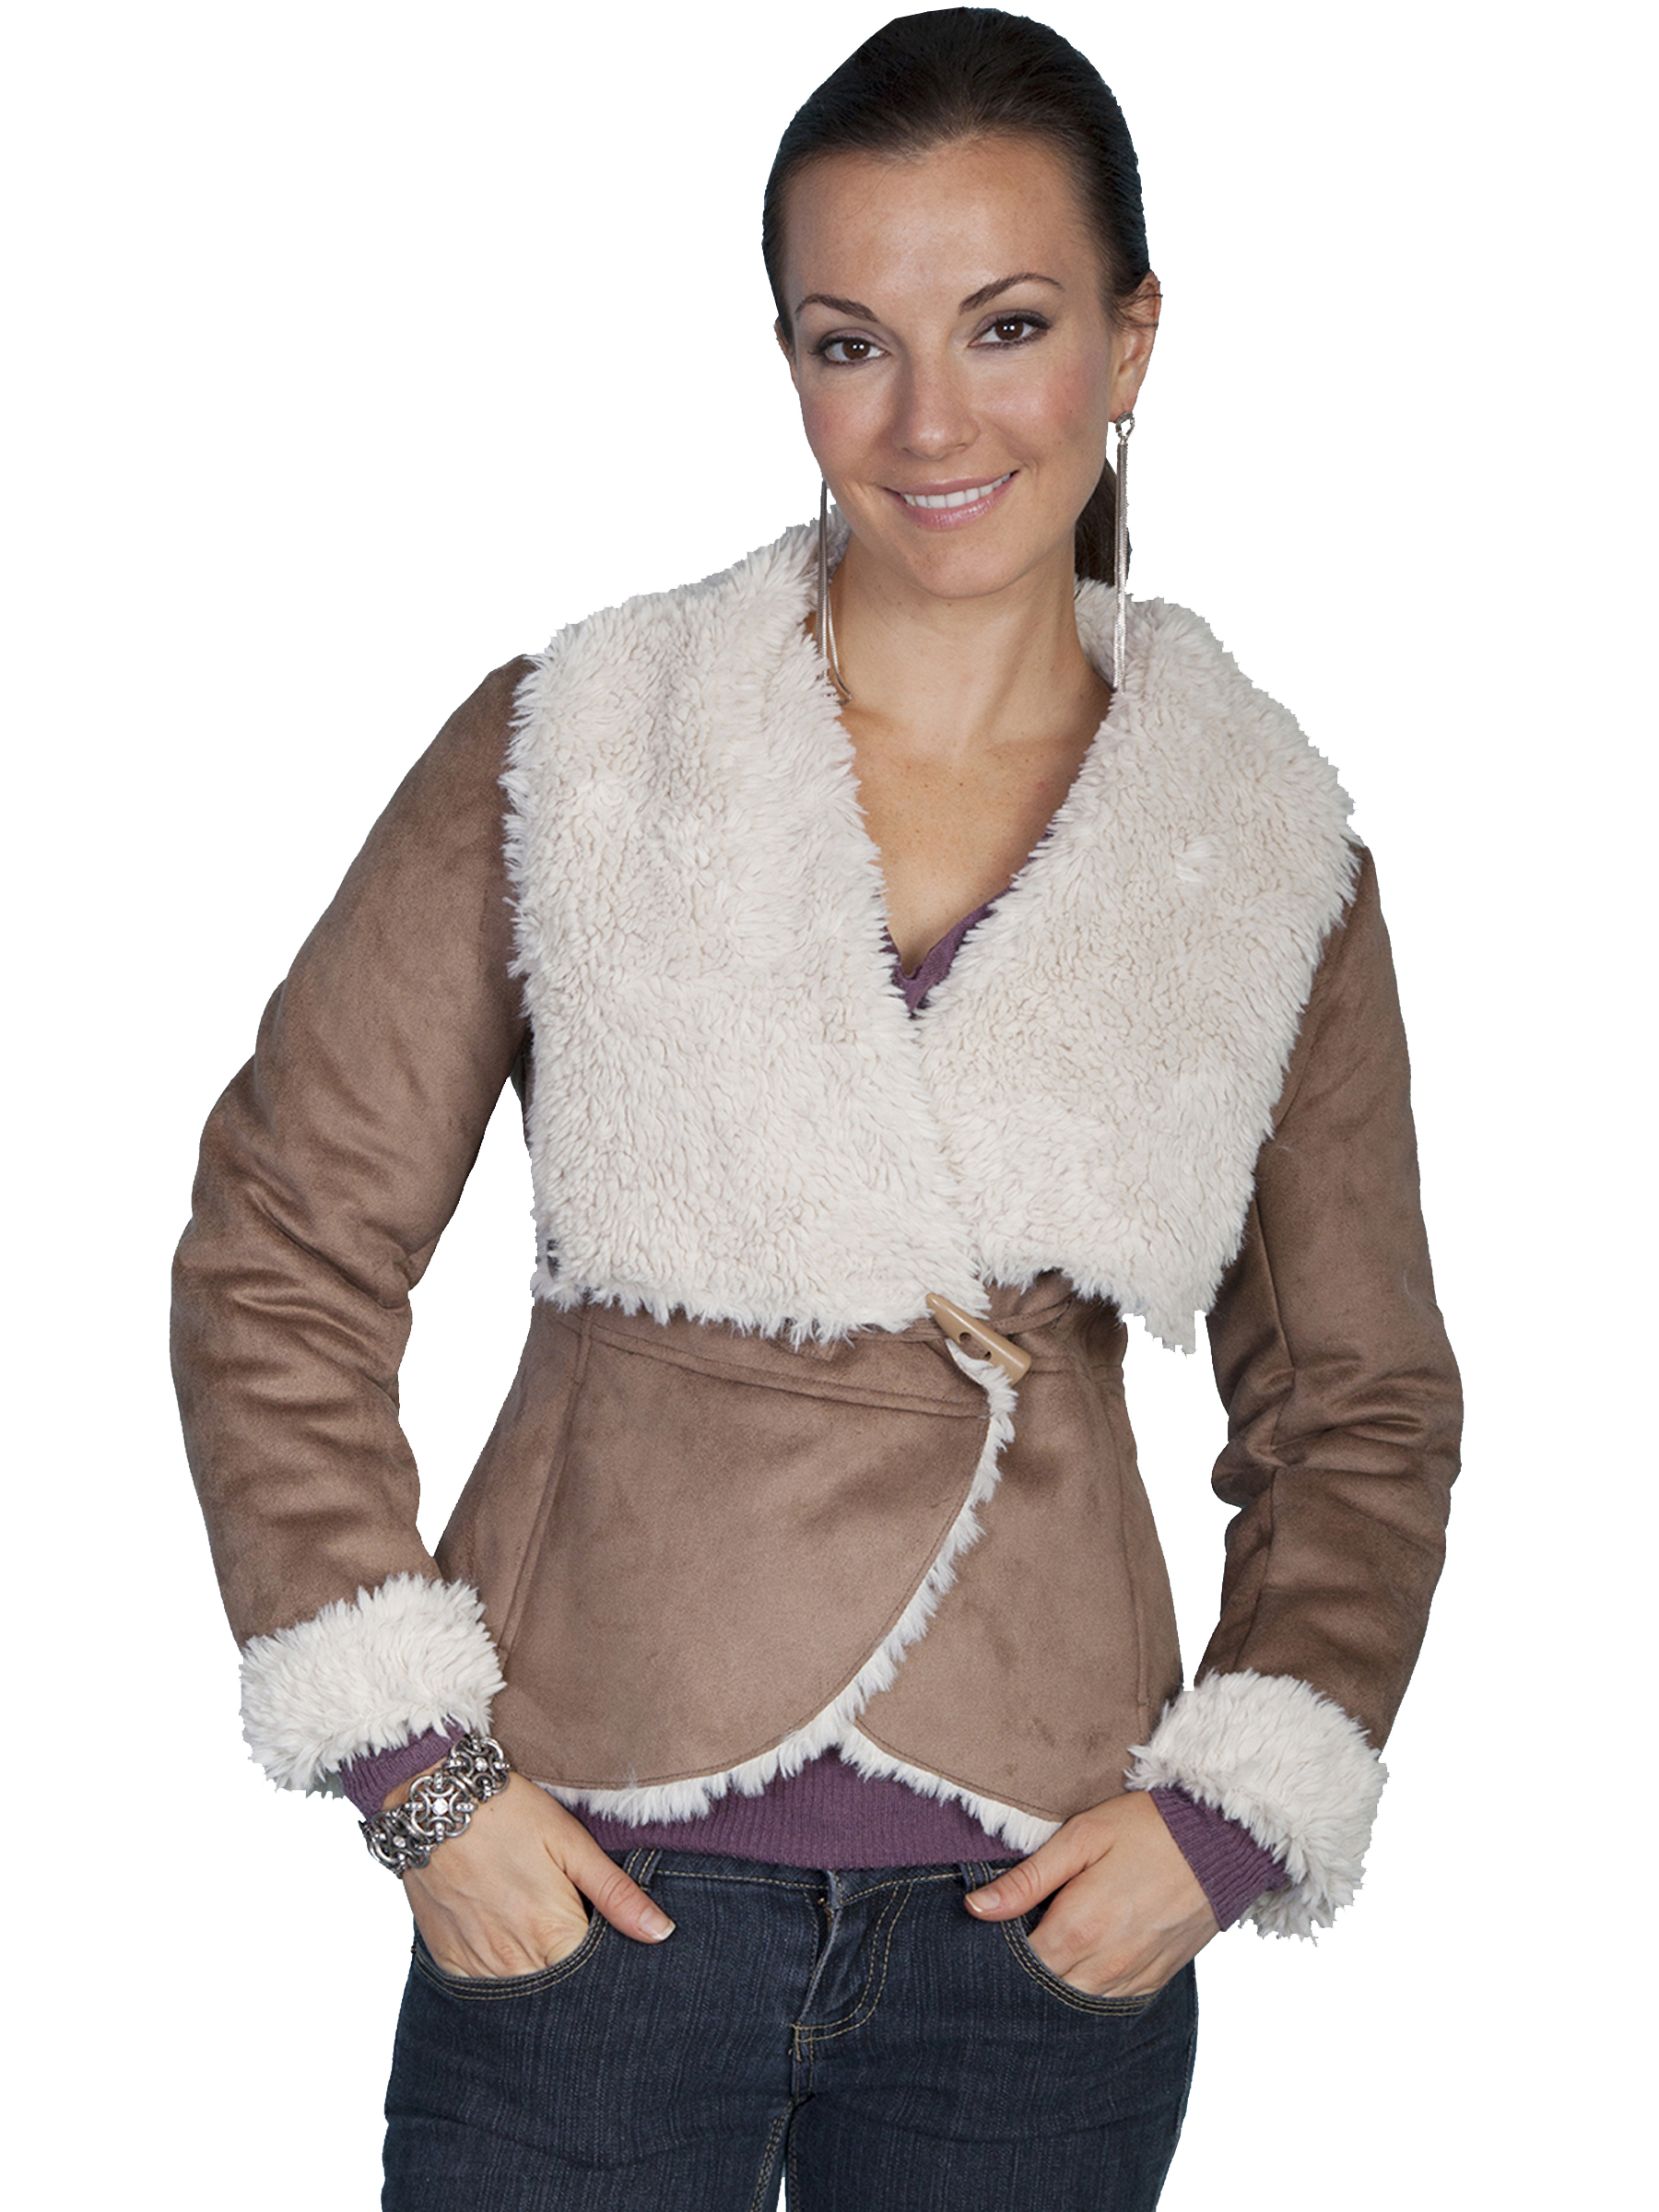 Stylish oversize faux fur collar and faux suede jacket